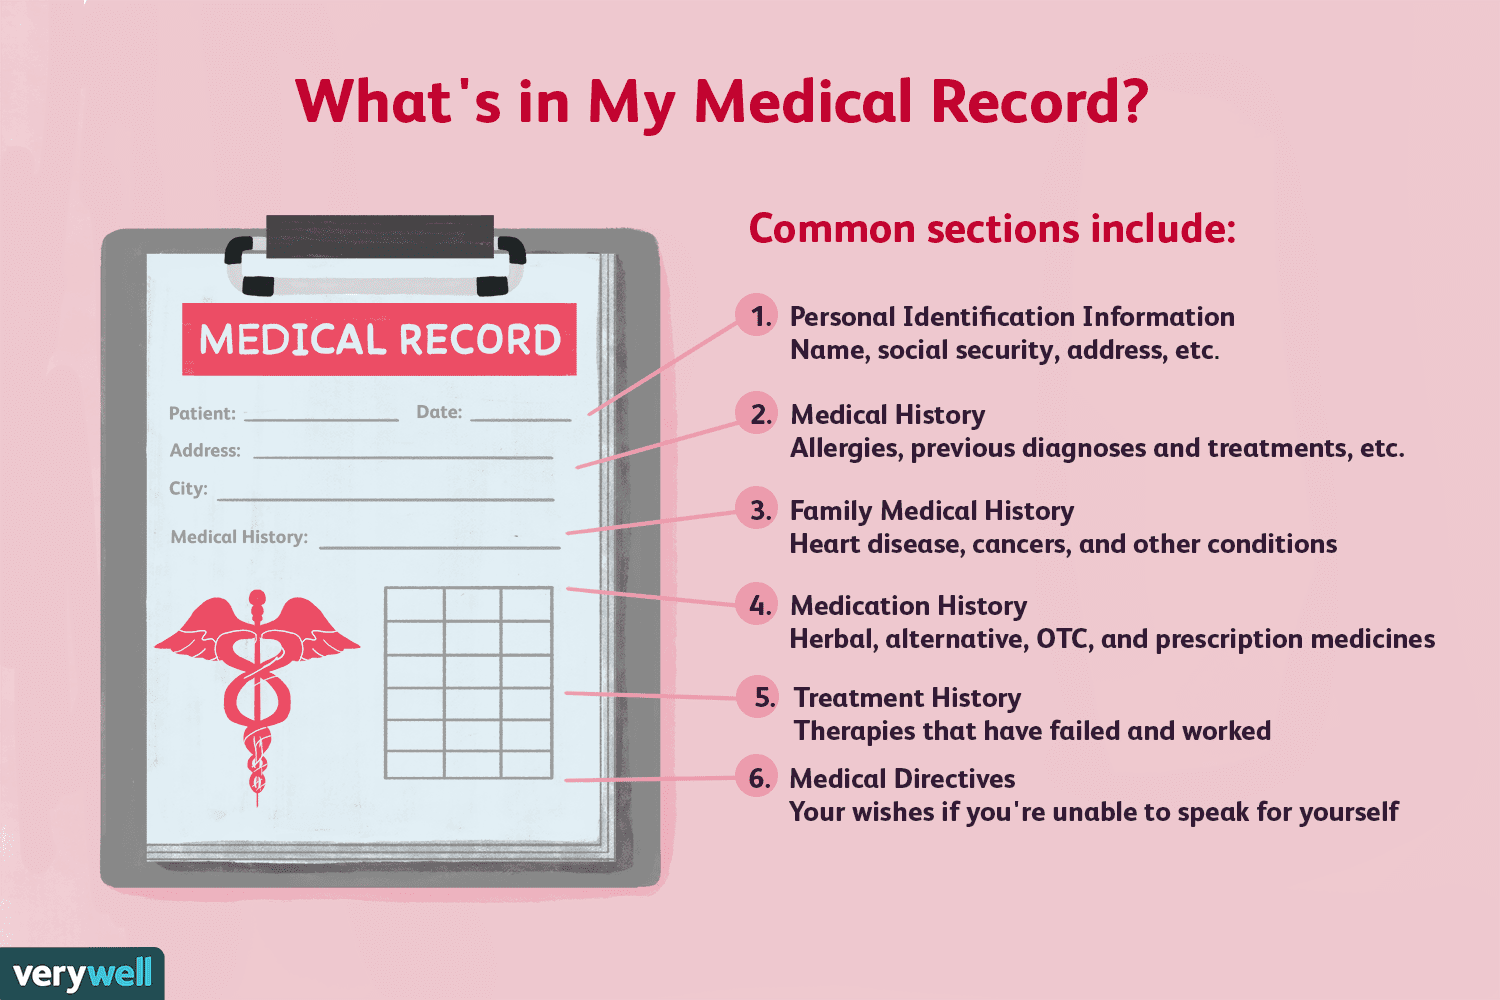 The Basic Components of a Complete Medical Record